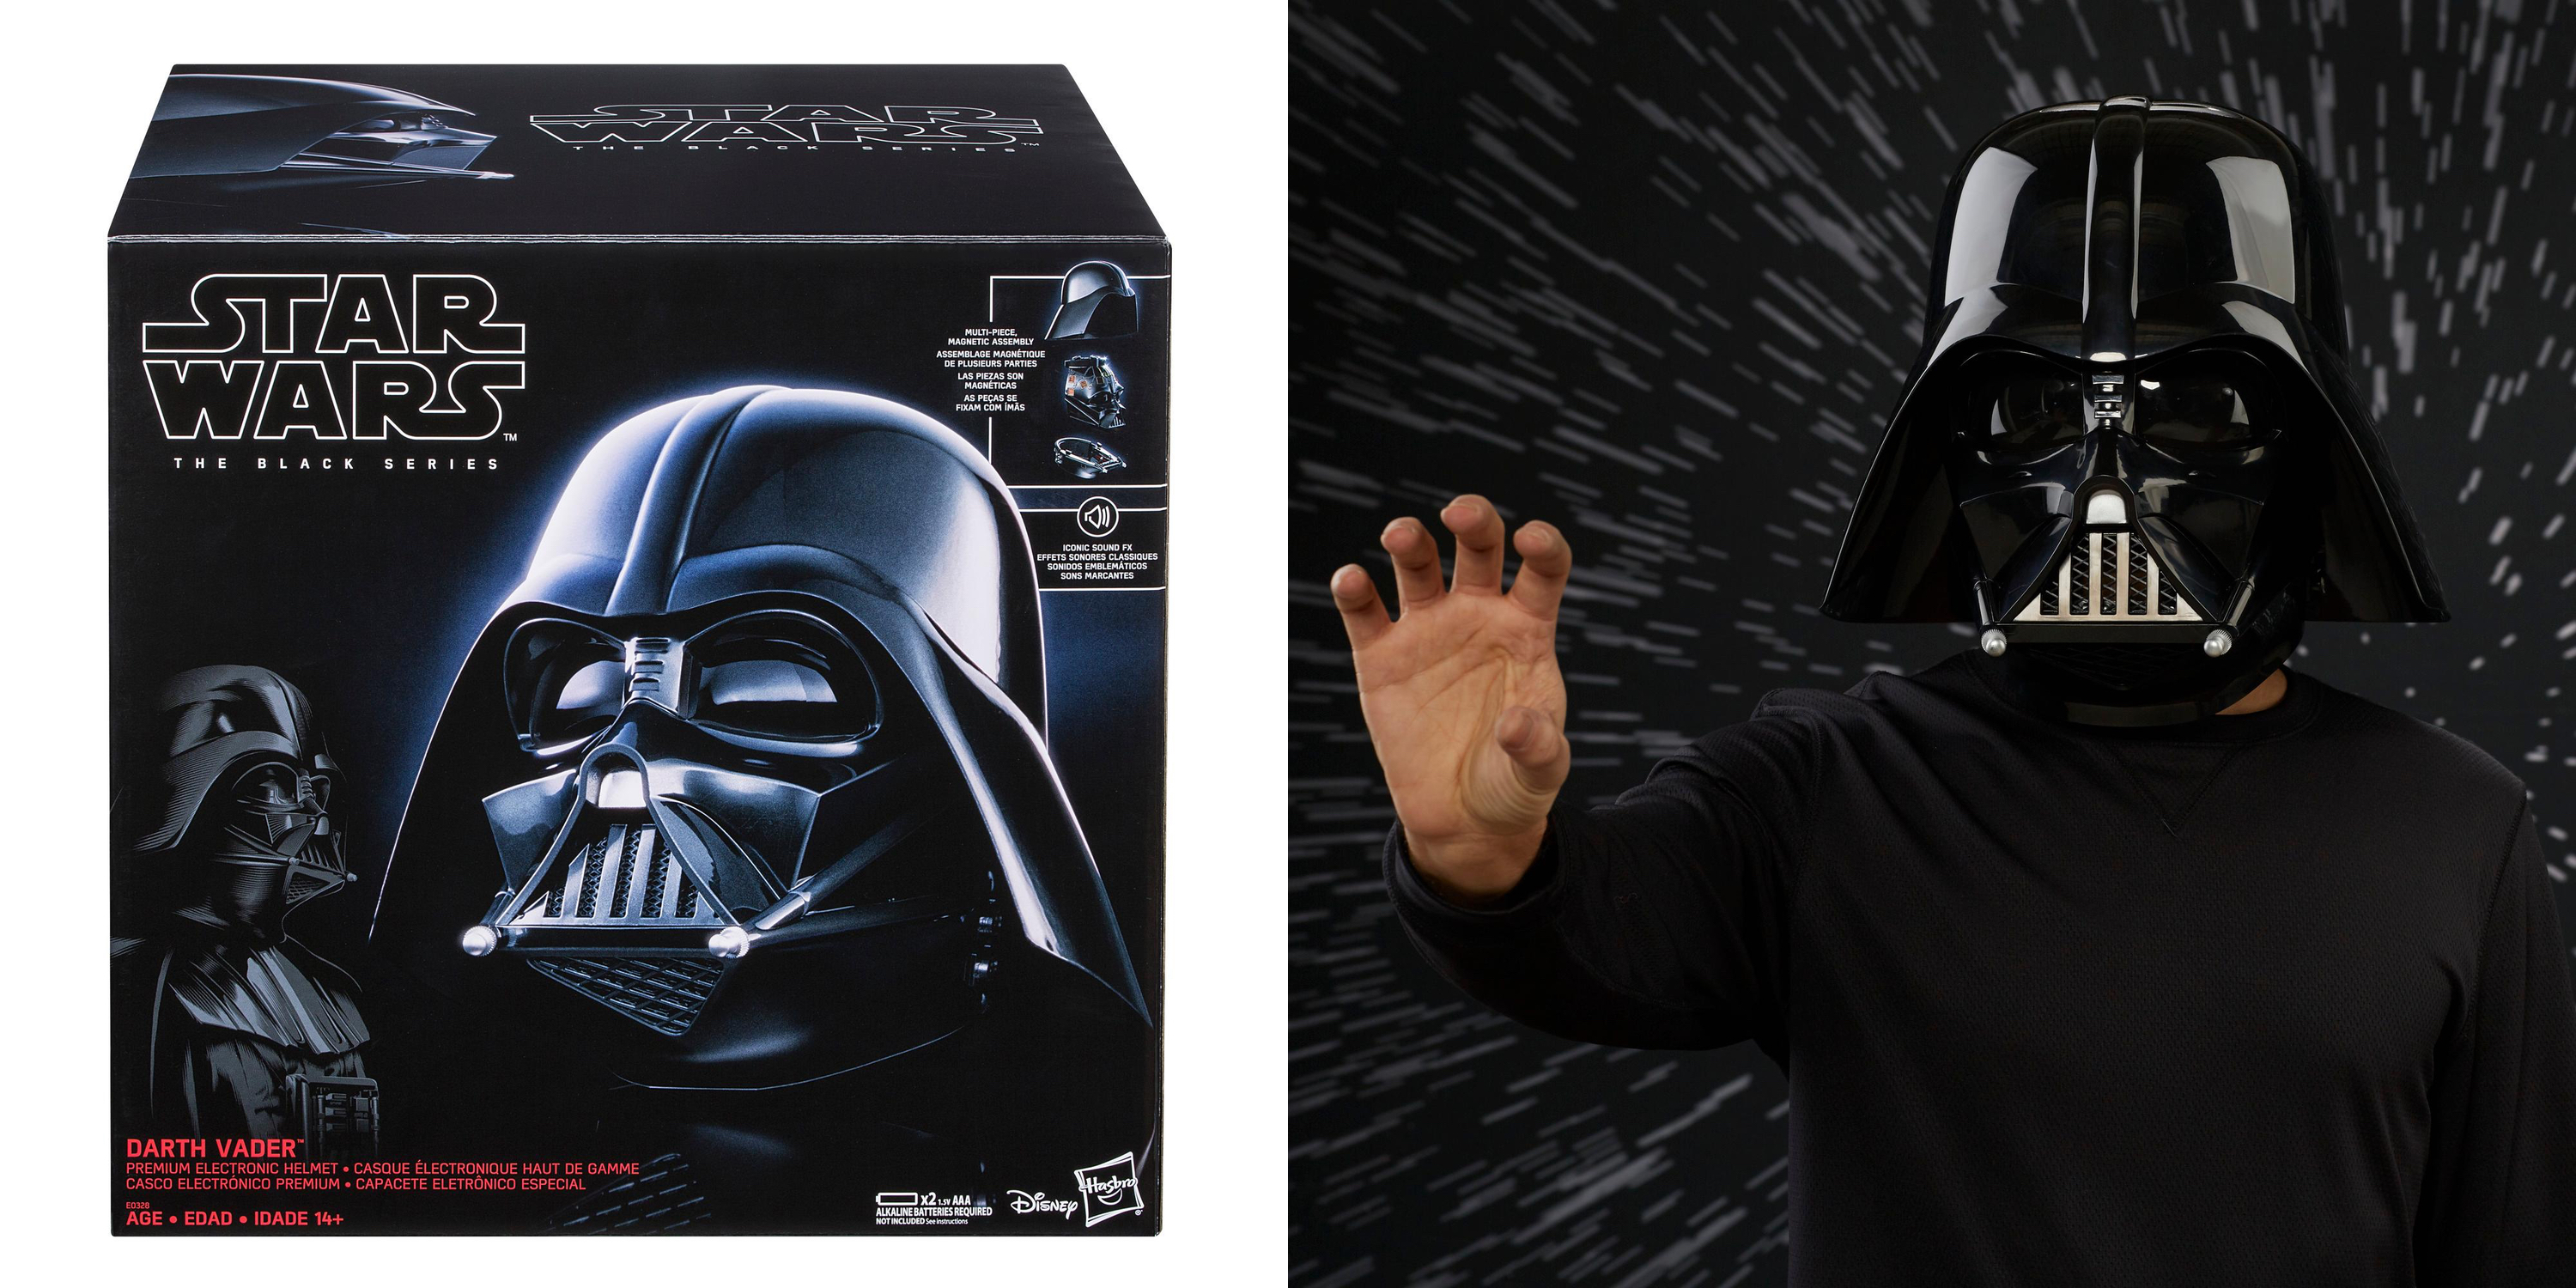 Every Star Wars fan needs this authentic Darth Vader Helmet, add it to your collection for $60